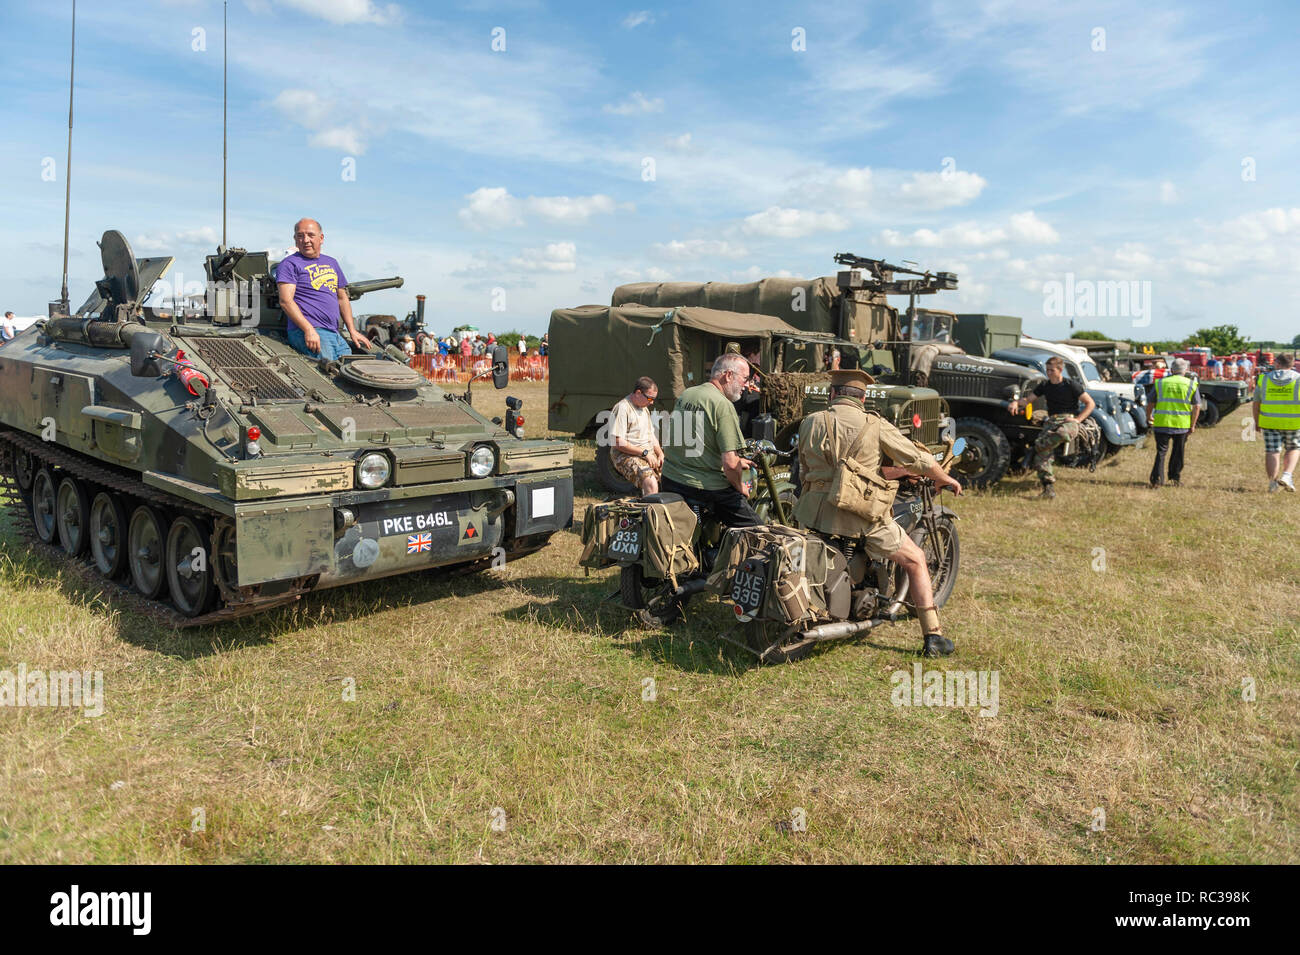 Two vintage British Army Matchless G3 350cc motorcycles and a 1970s FV103 Spartan armoured personnel carrier at Preston Steam Rally, Kent, England - Stock Image